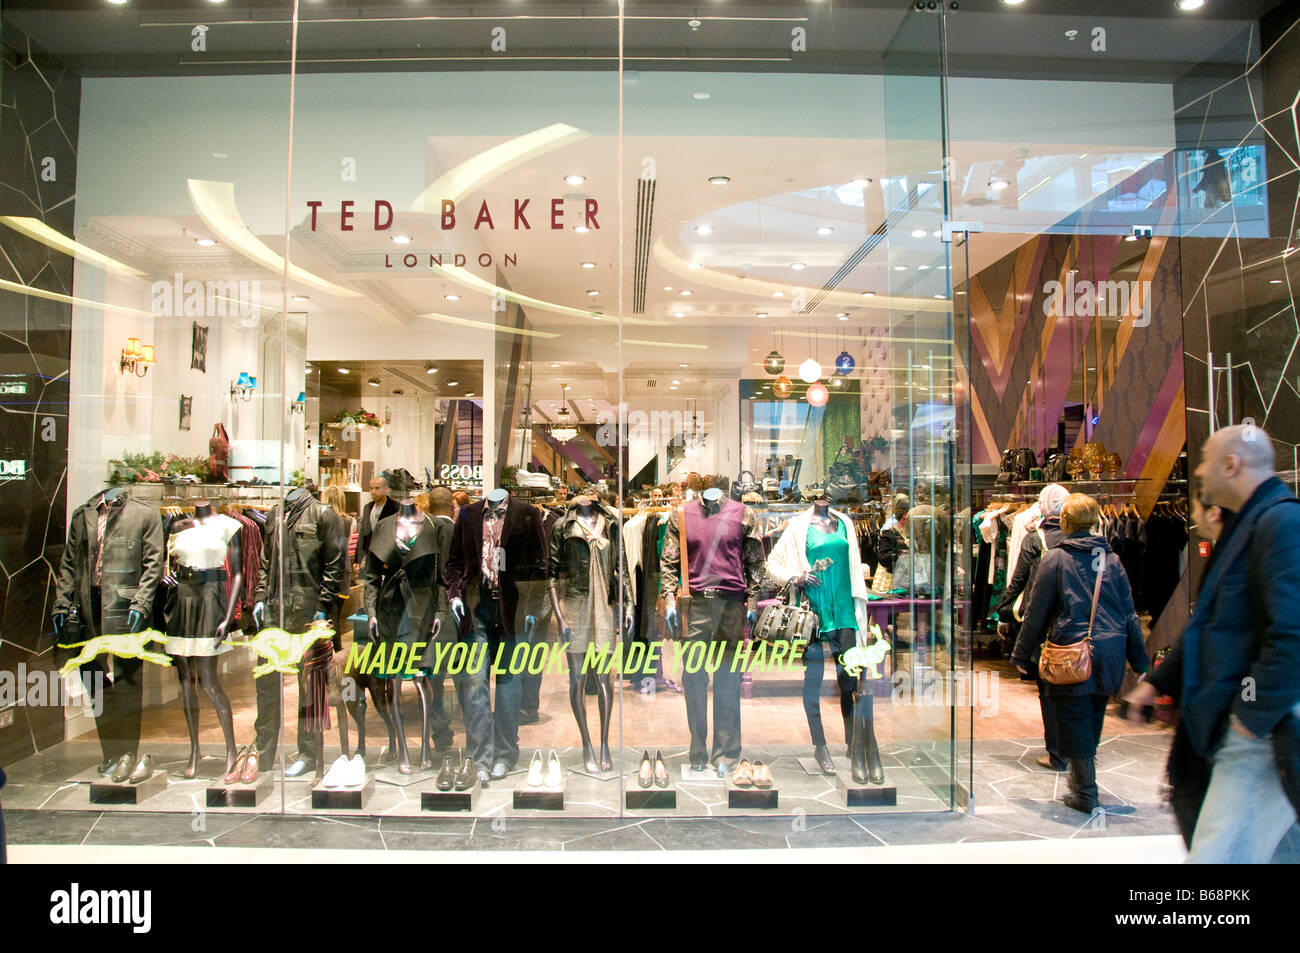 Ted Baker in London - Stock Image